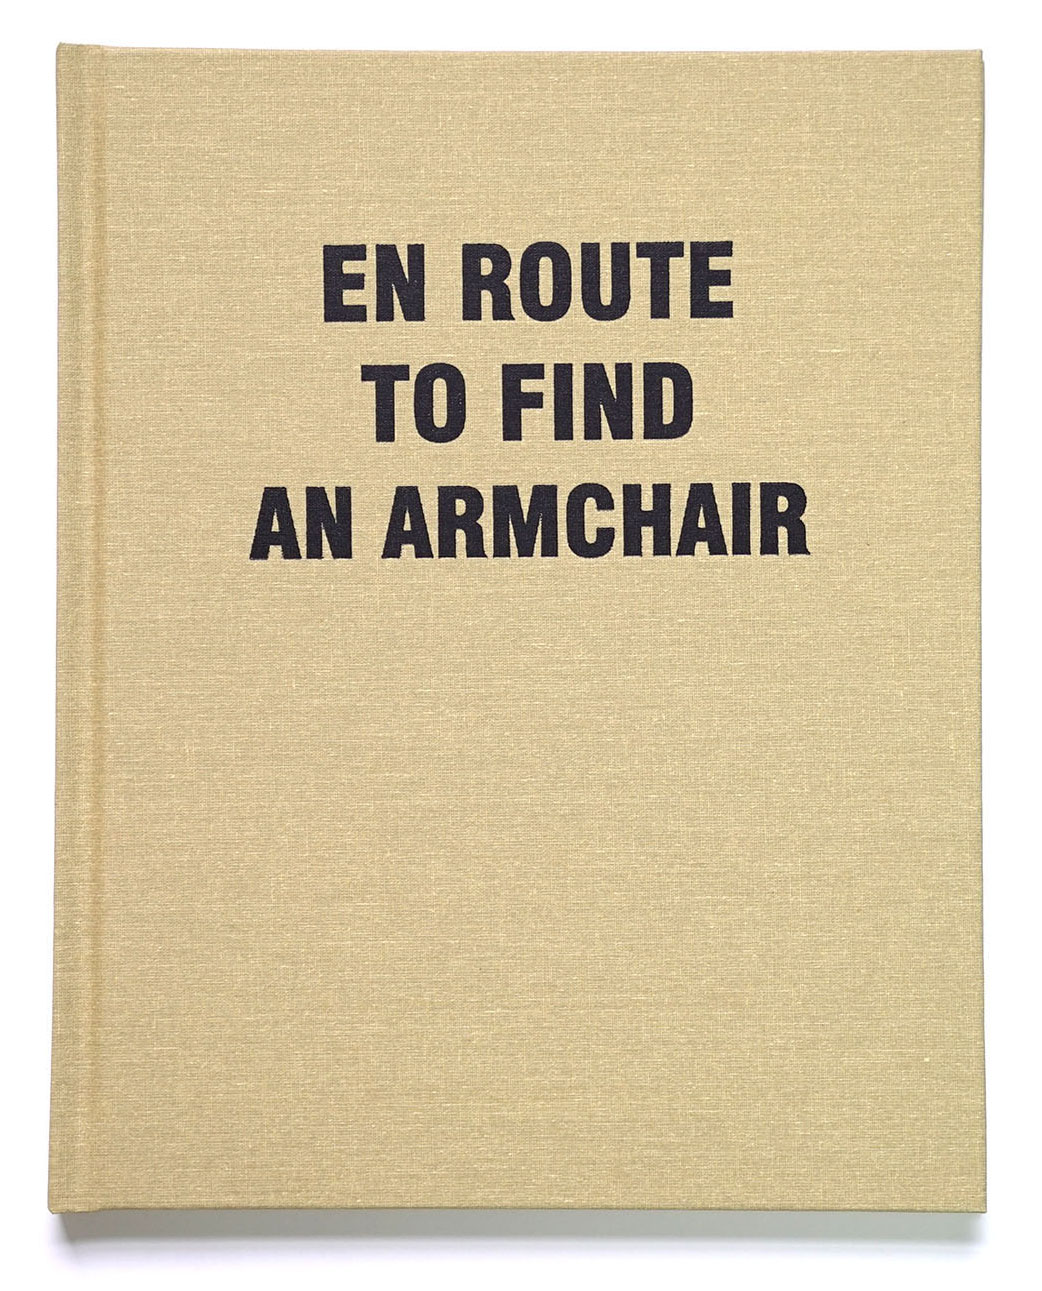 En Route to Find an Armchair,  laser-print book, edition 30, 2017.